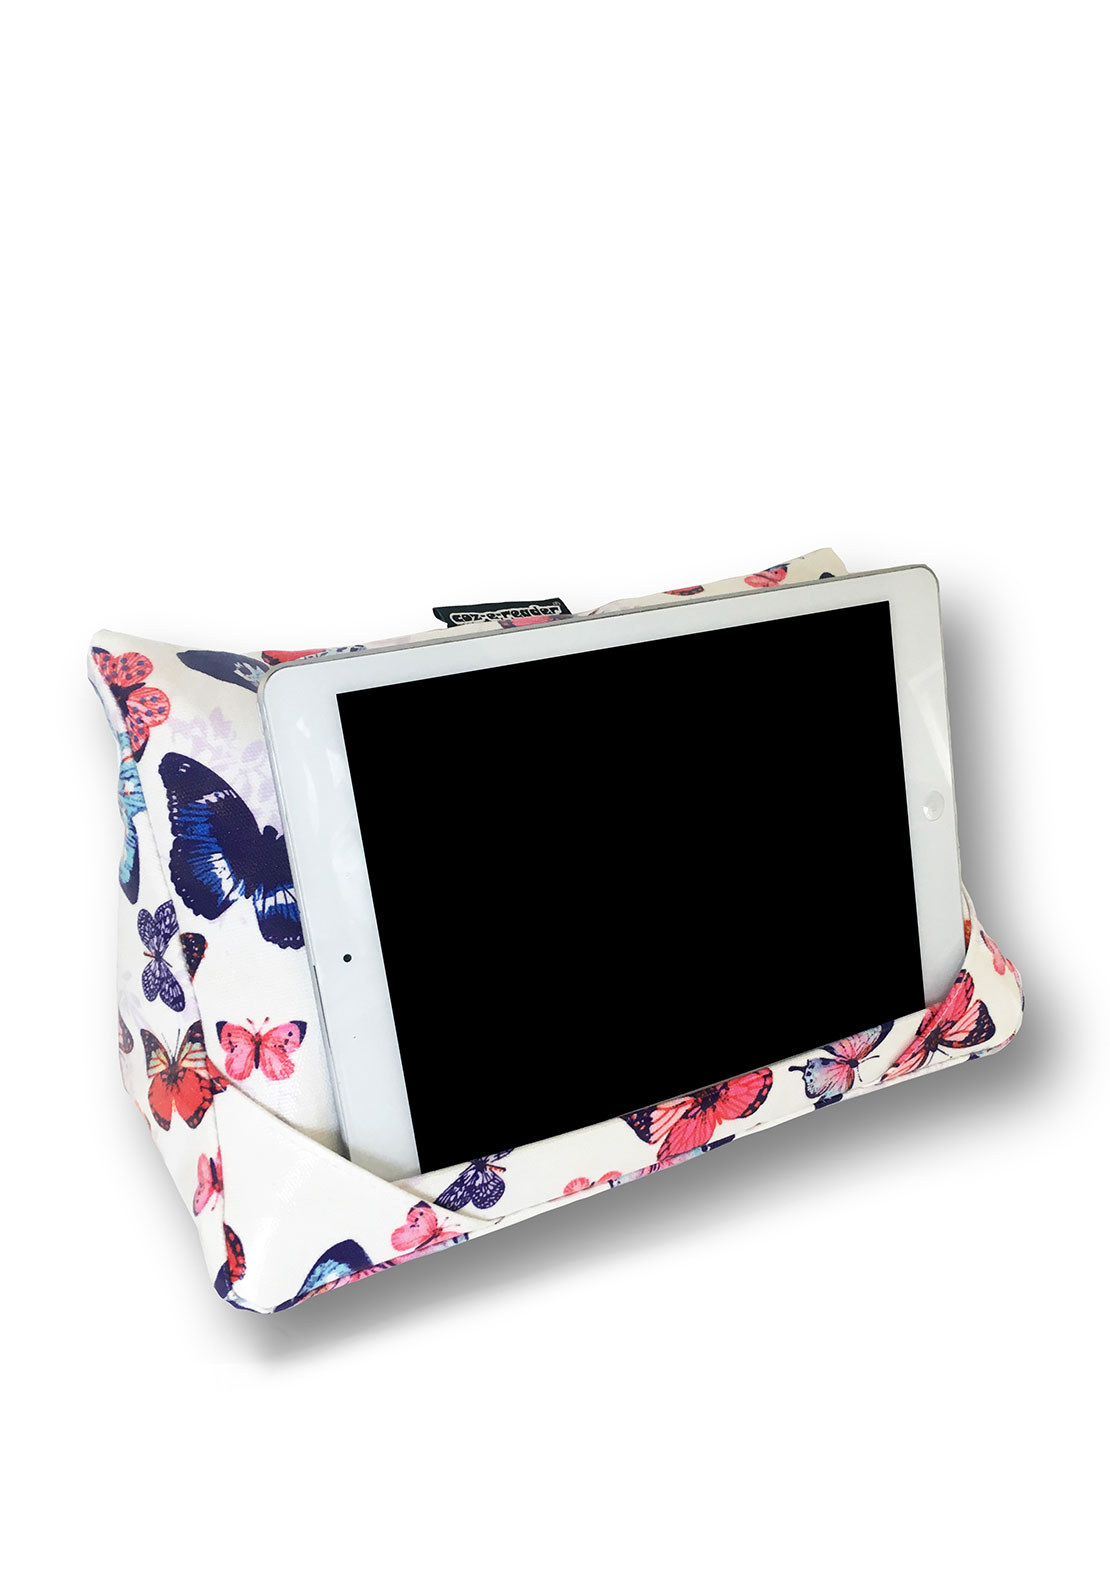 Coz-e-reader Butterfly Tablet Cushion, White